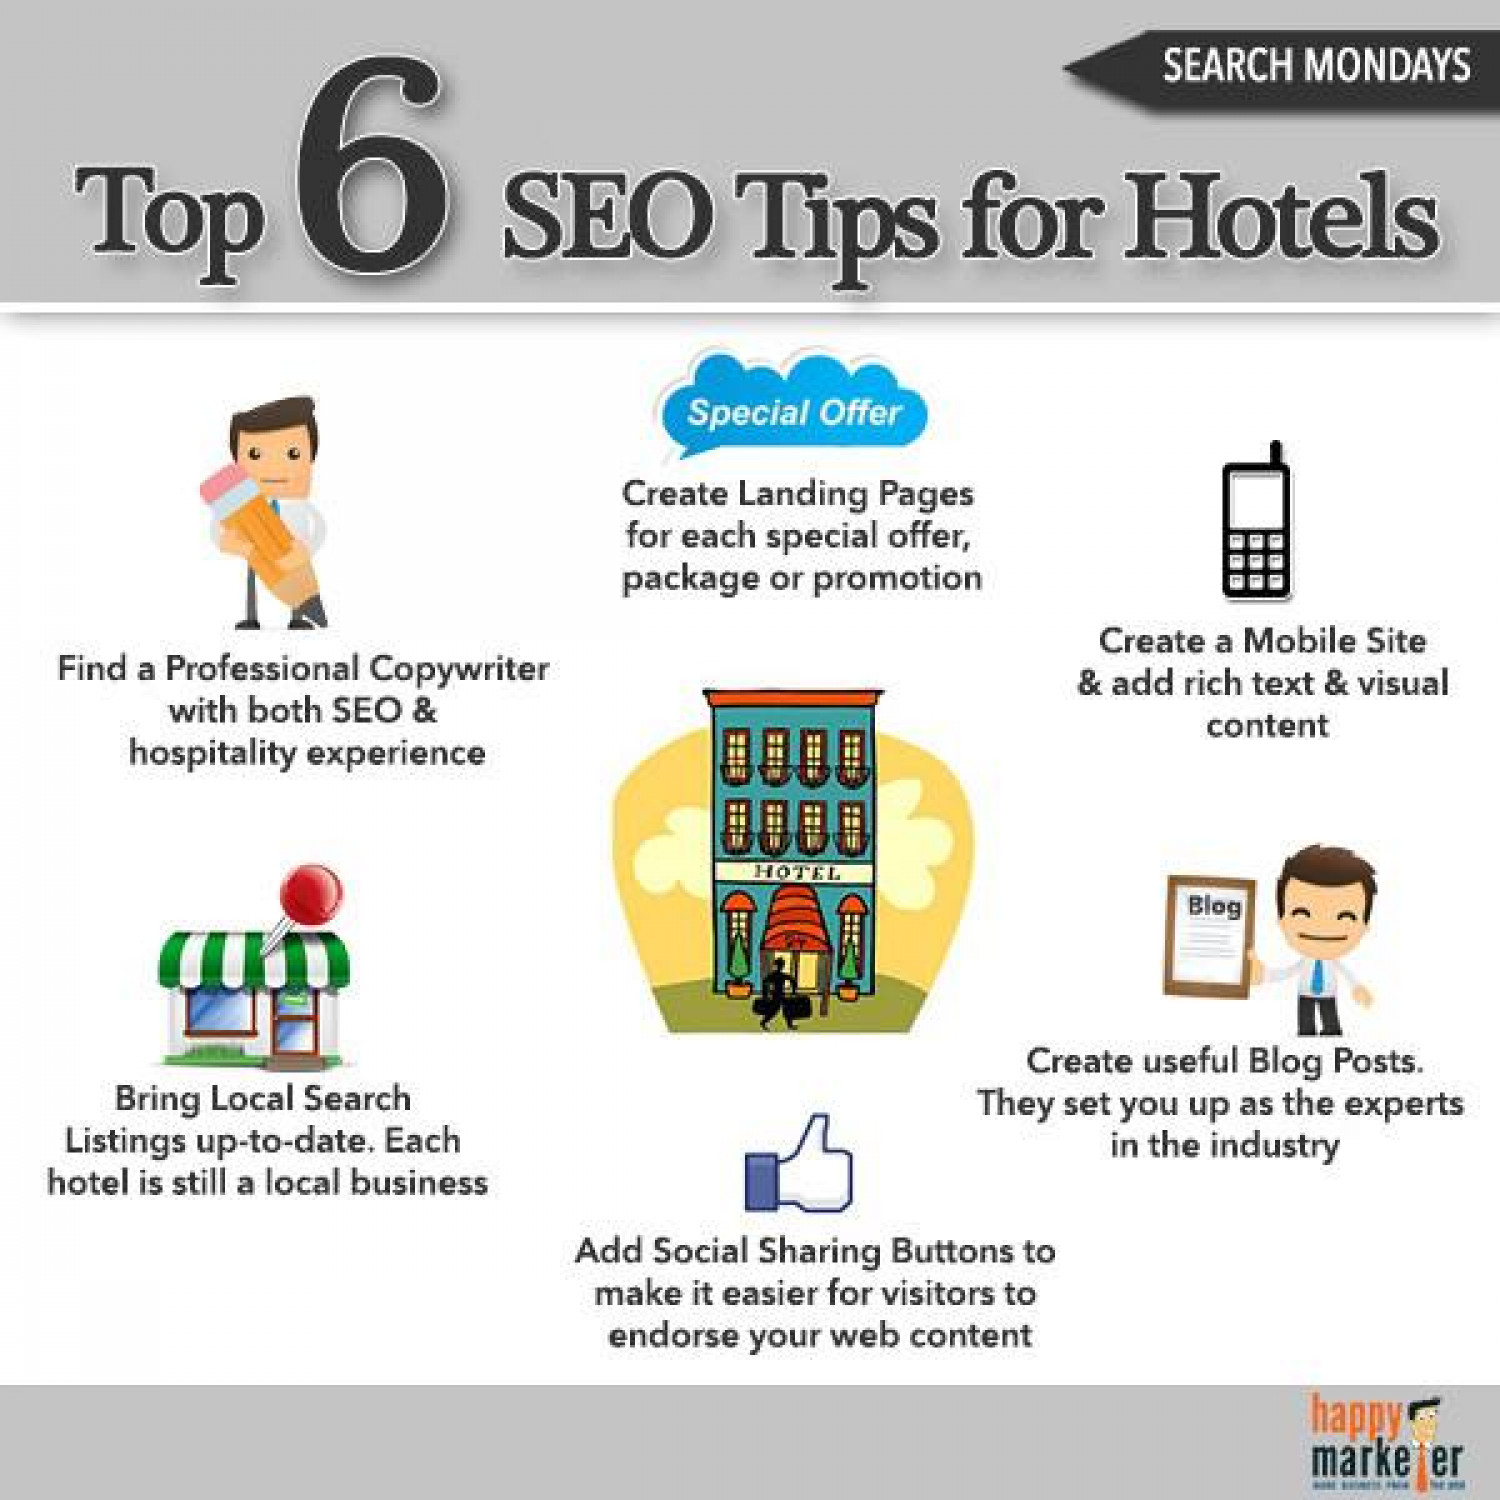 6 SEO Tips for Hotels Infographic